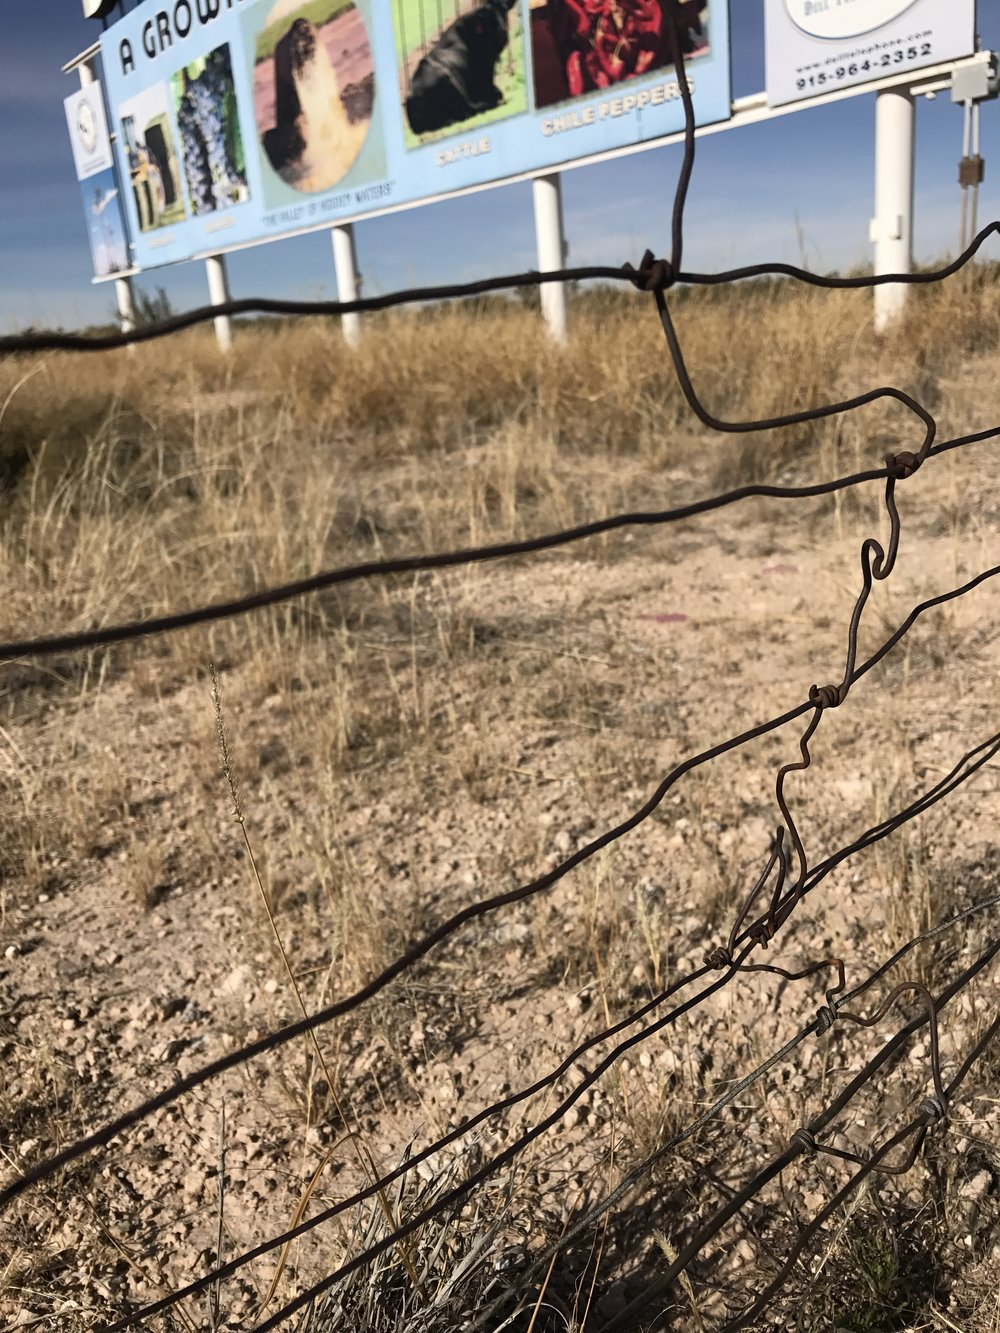 gnarly bayling wire fence.